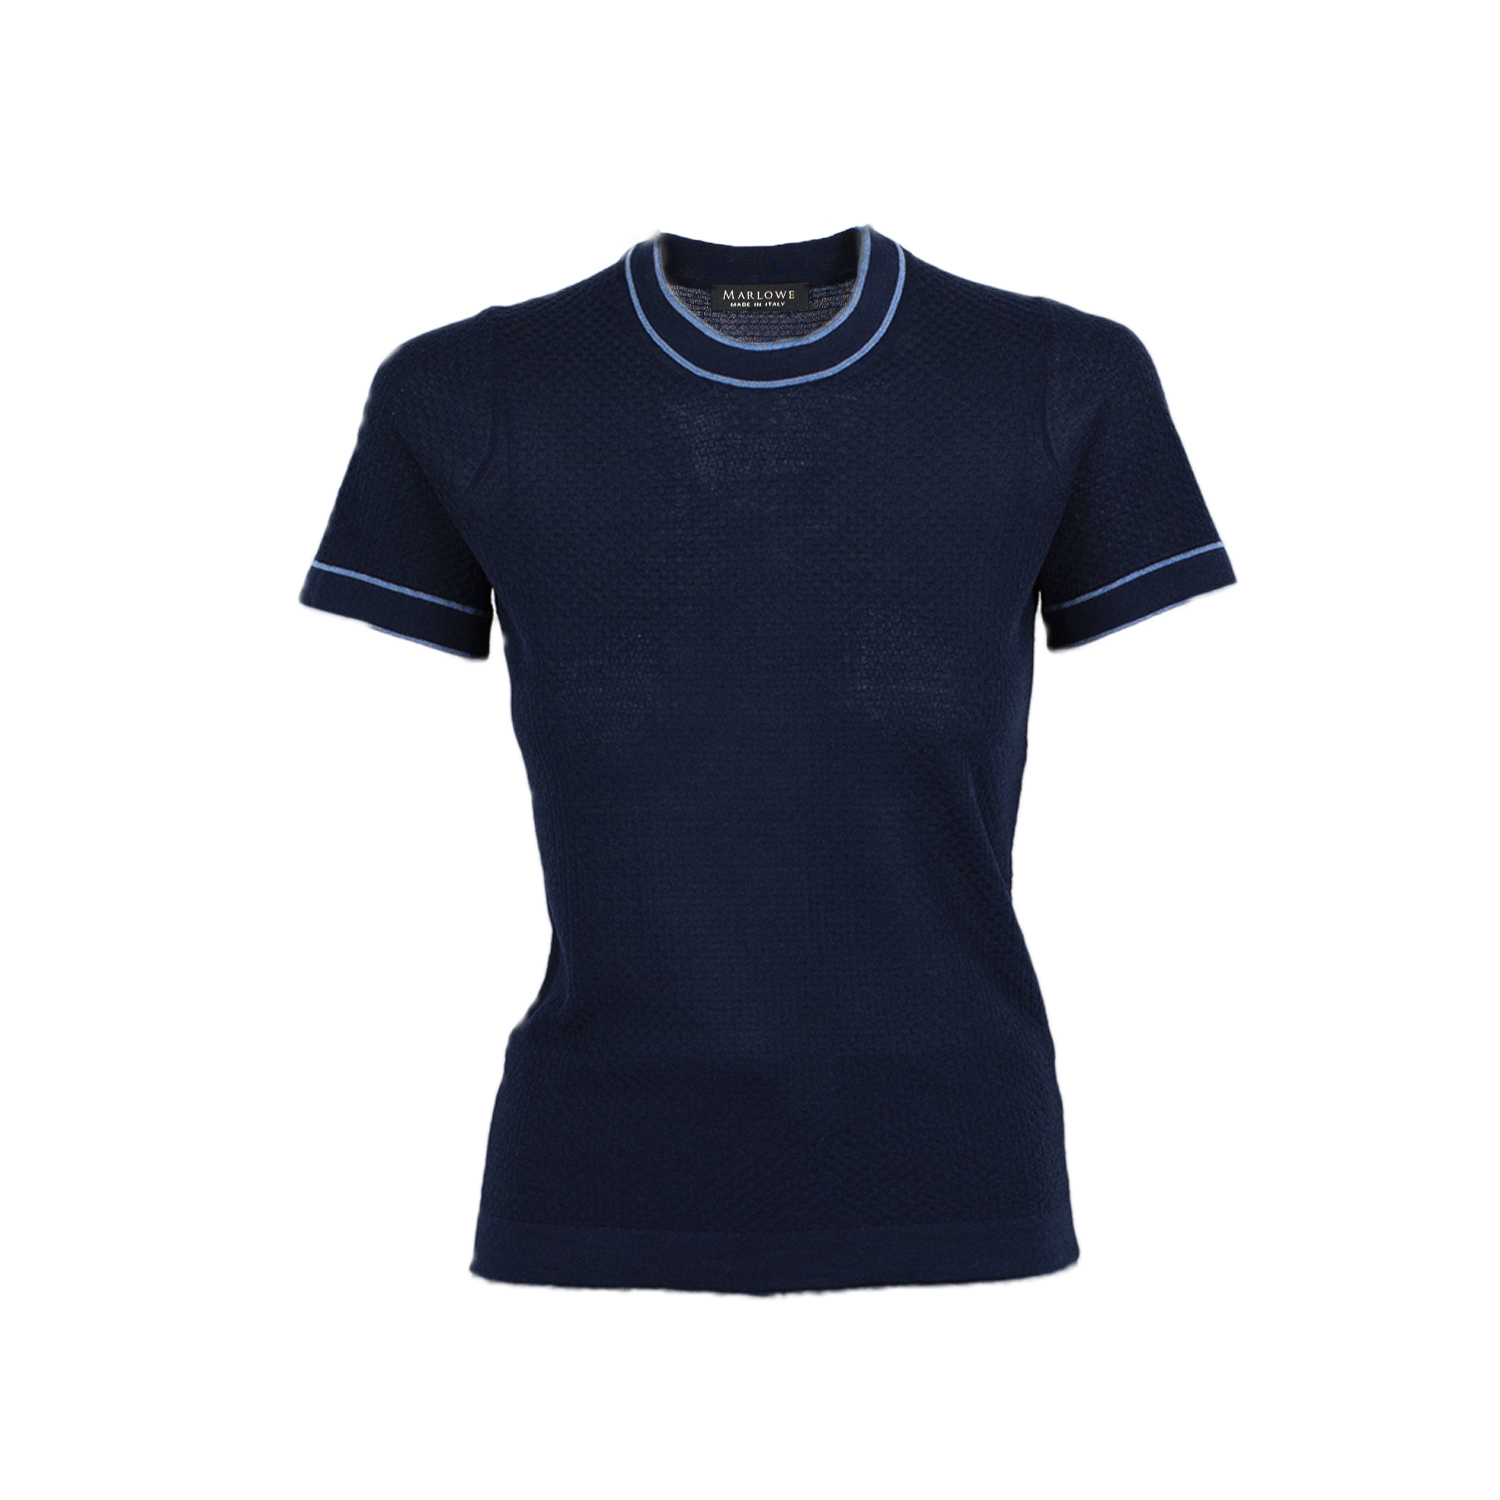 Cashmere crew neck tee second skin - indigo blue with plaster blue trim.jpg